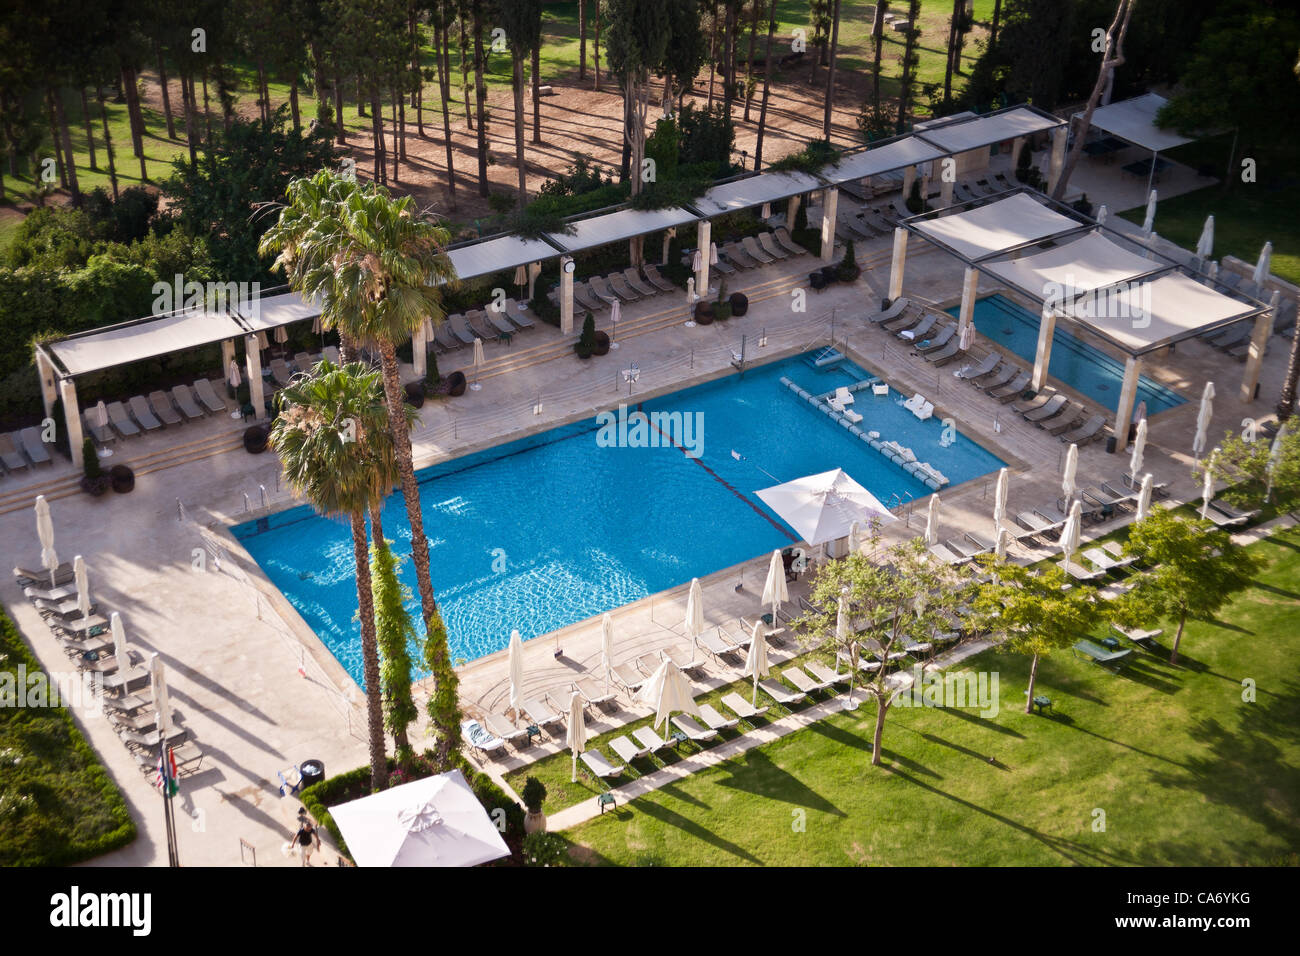 King david hotel stock photos king david hotel stock images alamy for Hotels in jerusalem with swimming pool